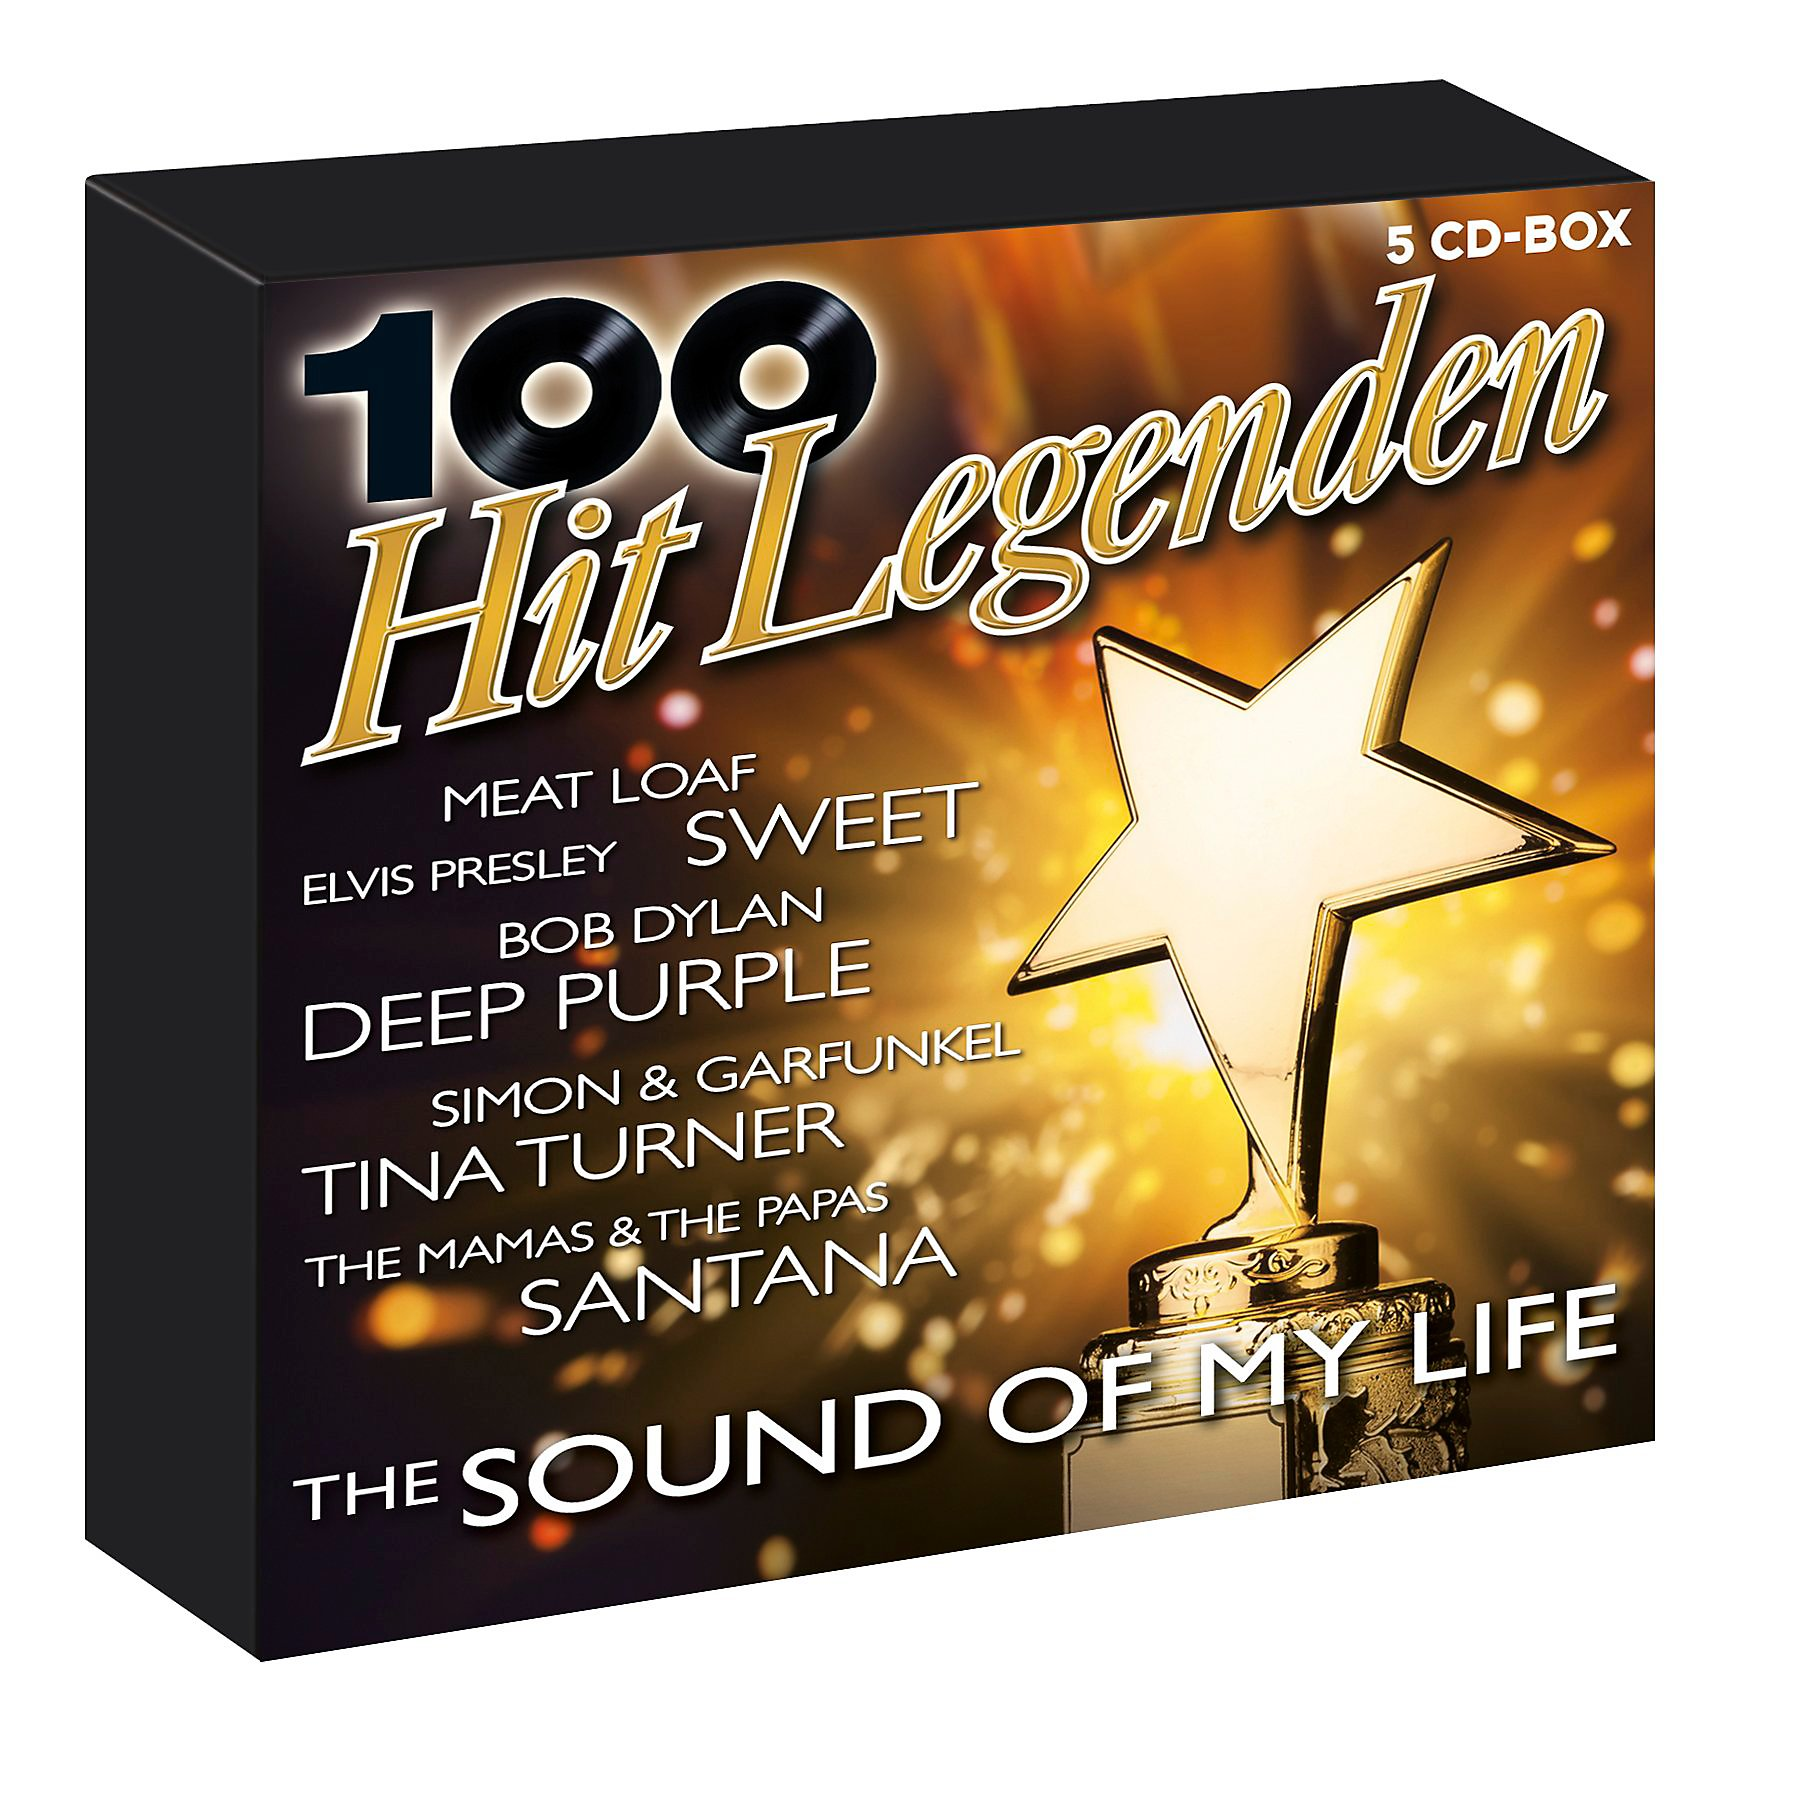 100 hit legenden the sound of my life exklusive 5cd